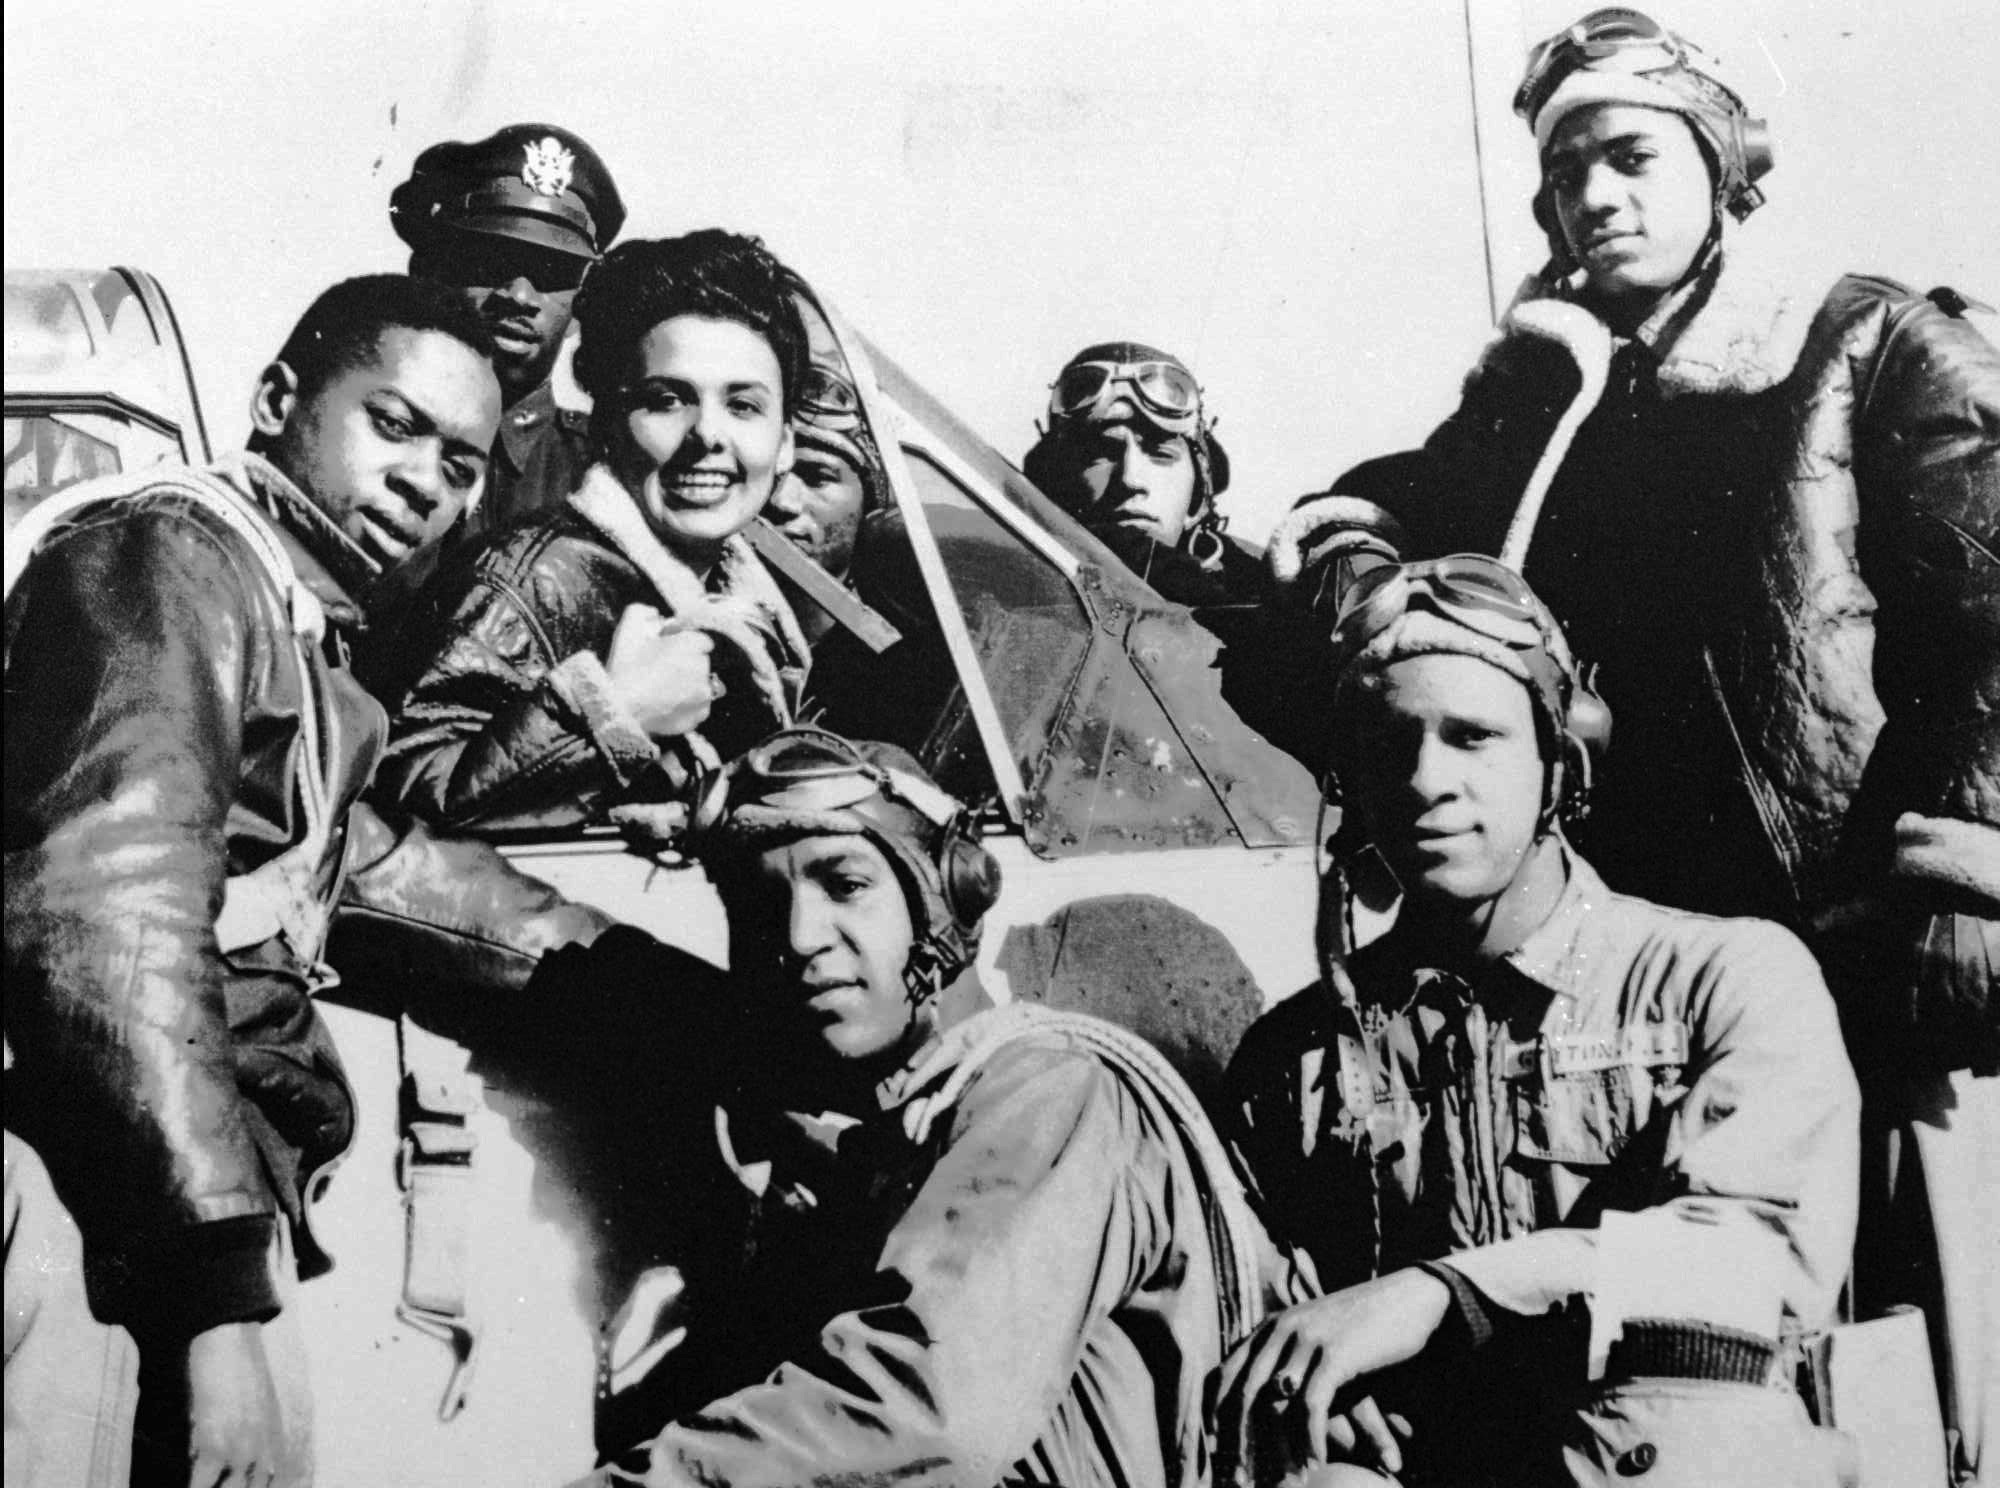 tuskegee airmen history essay The tuskegee airmen essay it was difficult for the tuskegee airmen to participate in world war ii as the first african-american pilots in history.